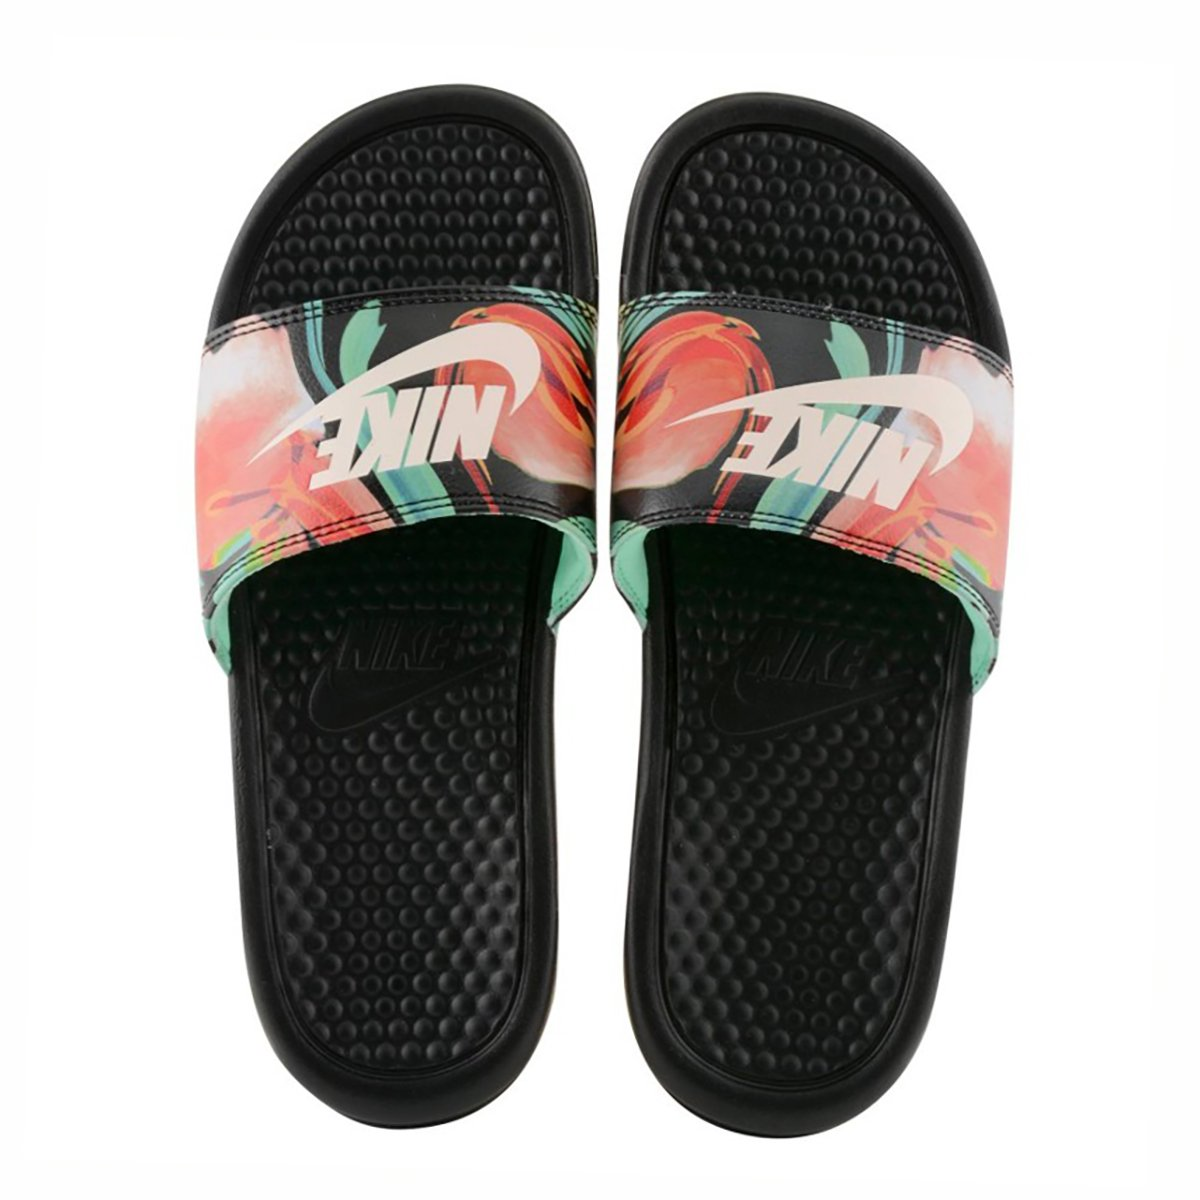 07d17244746 Nike Benassi Just Do It Print 618919-019